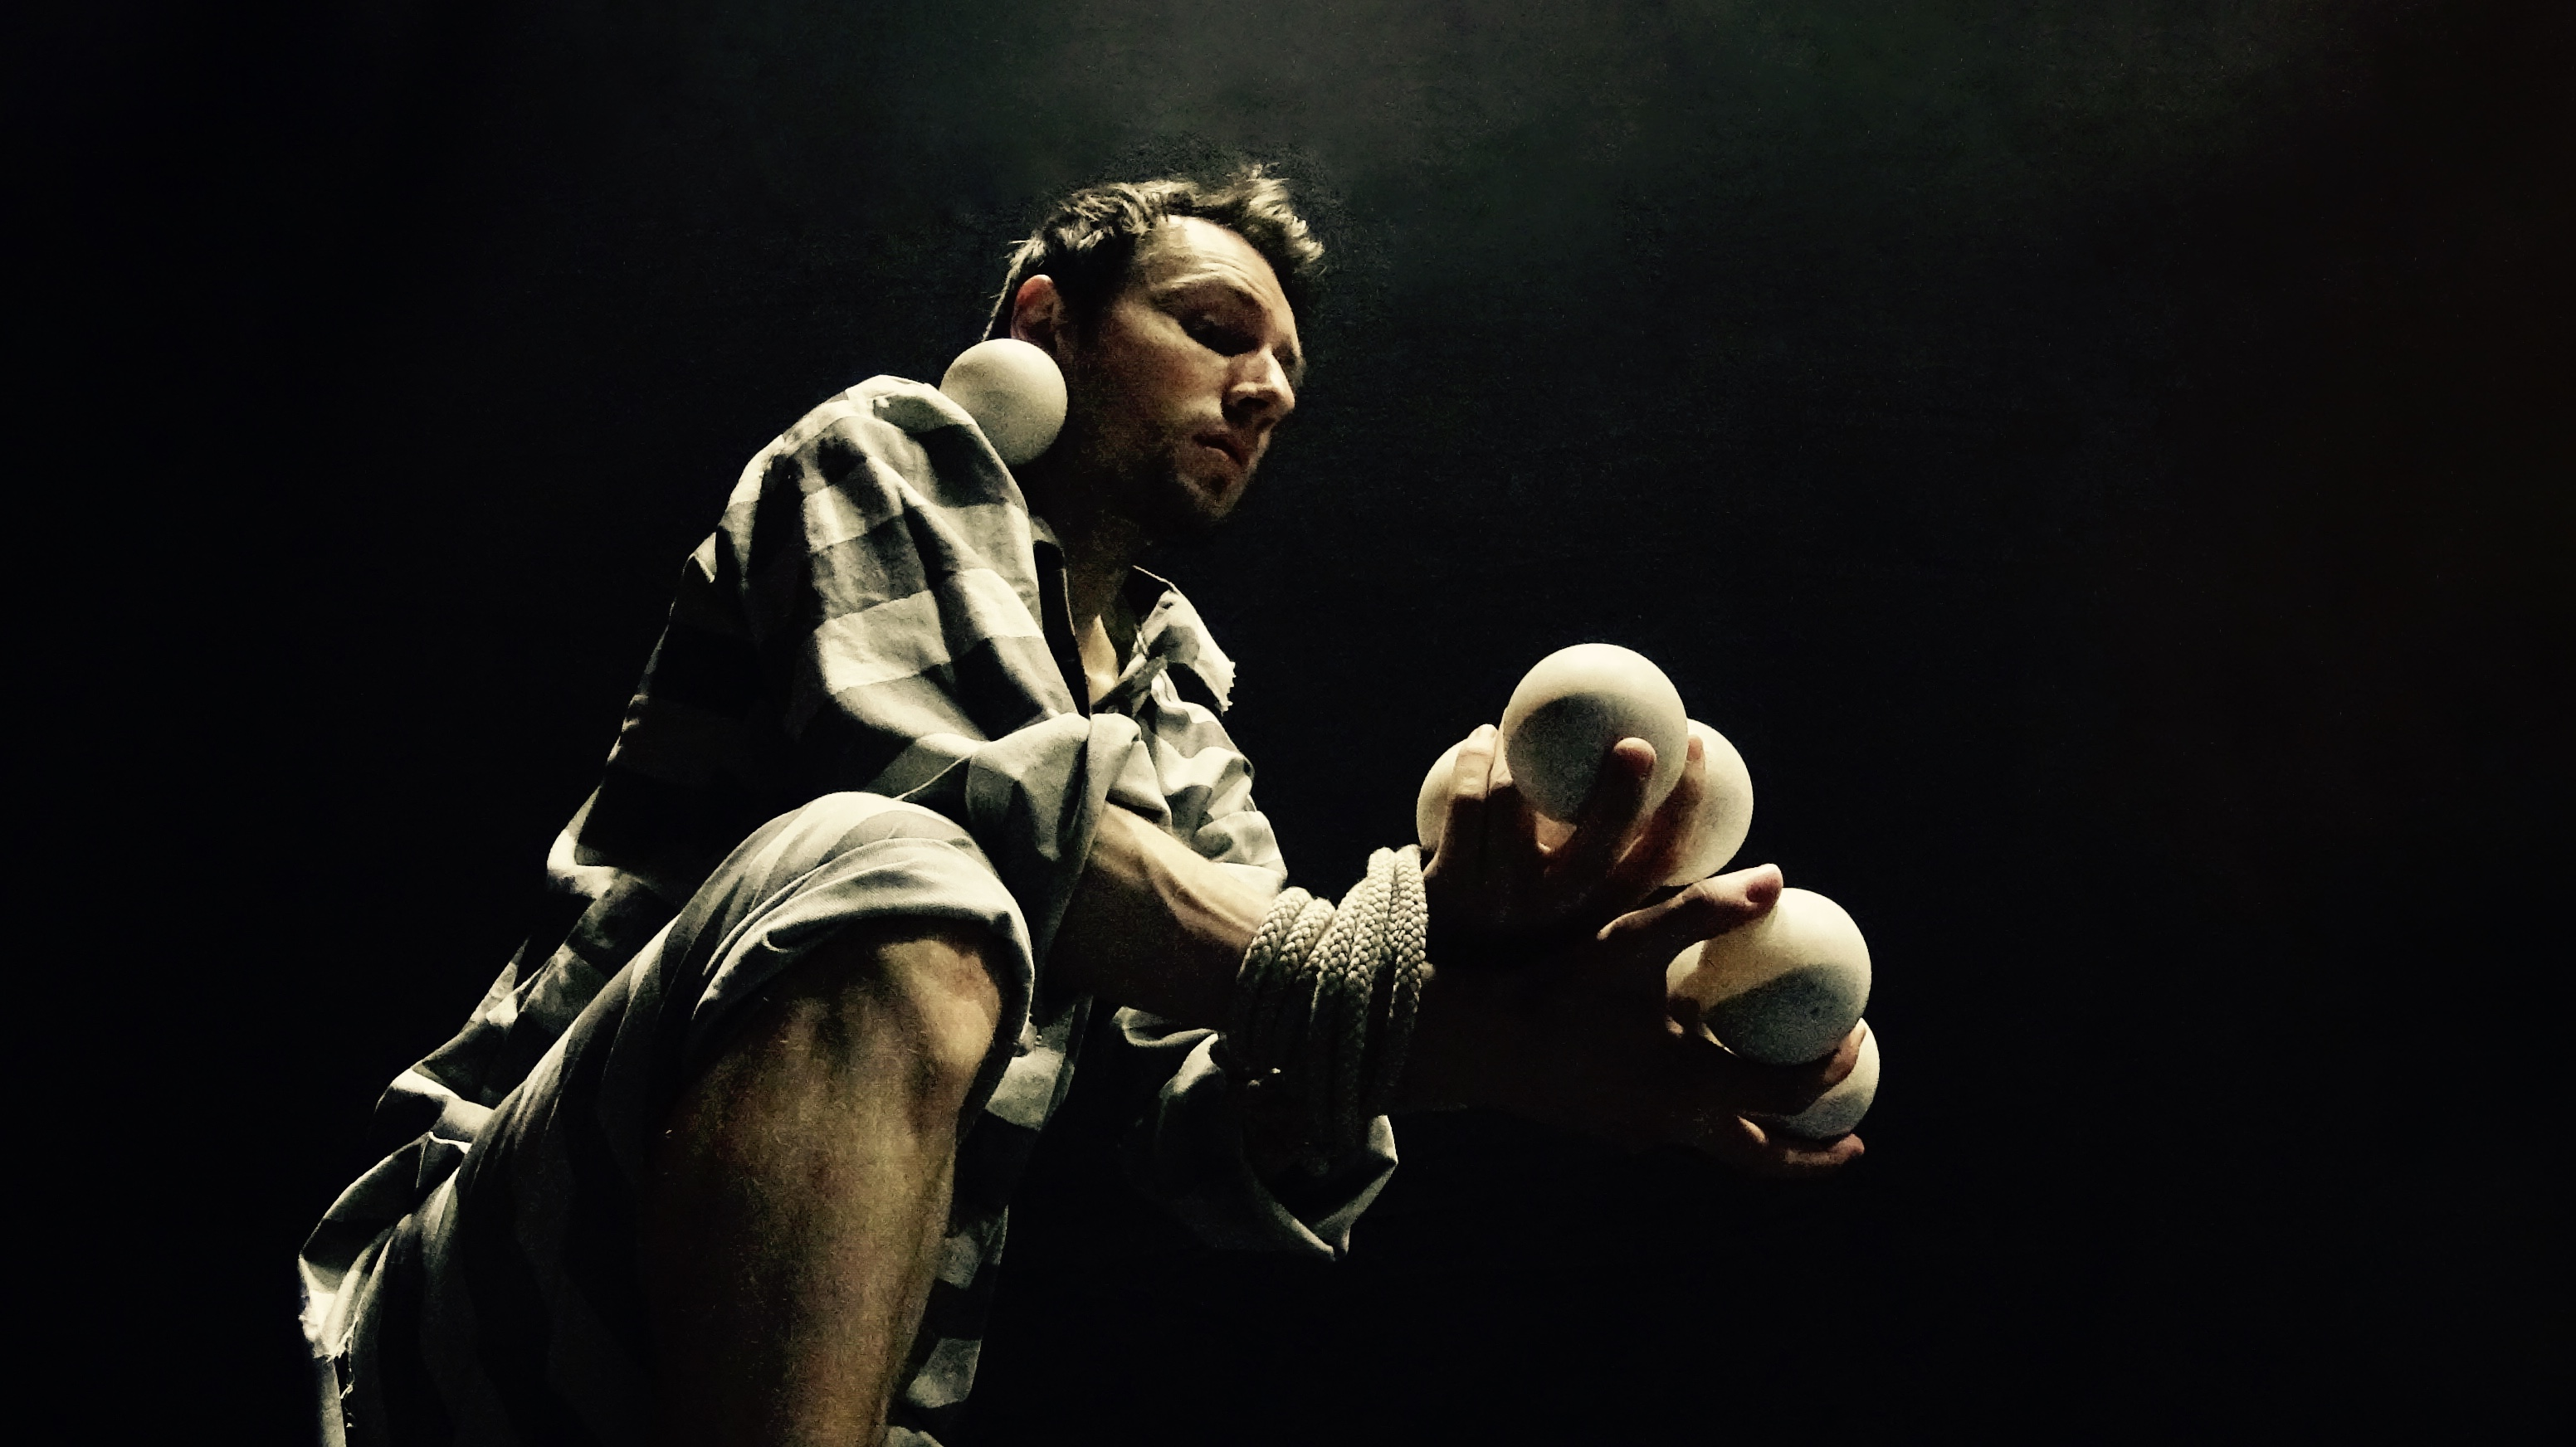 Prisoner Juggling 6